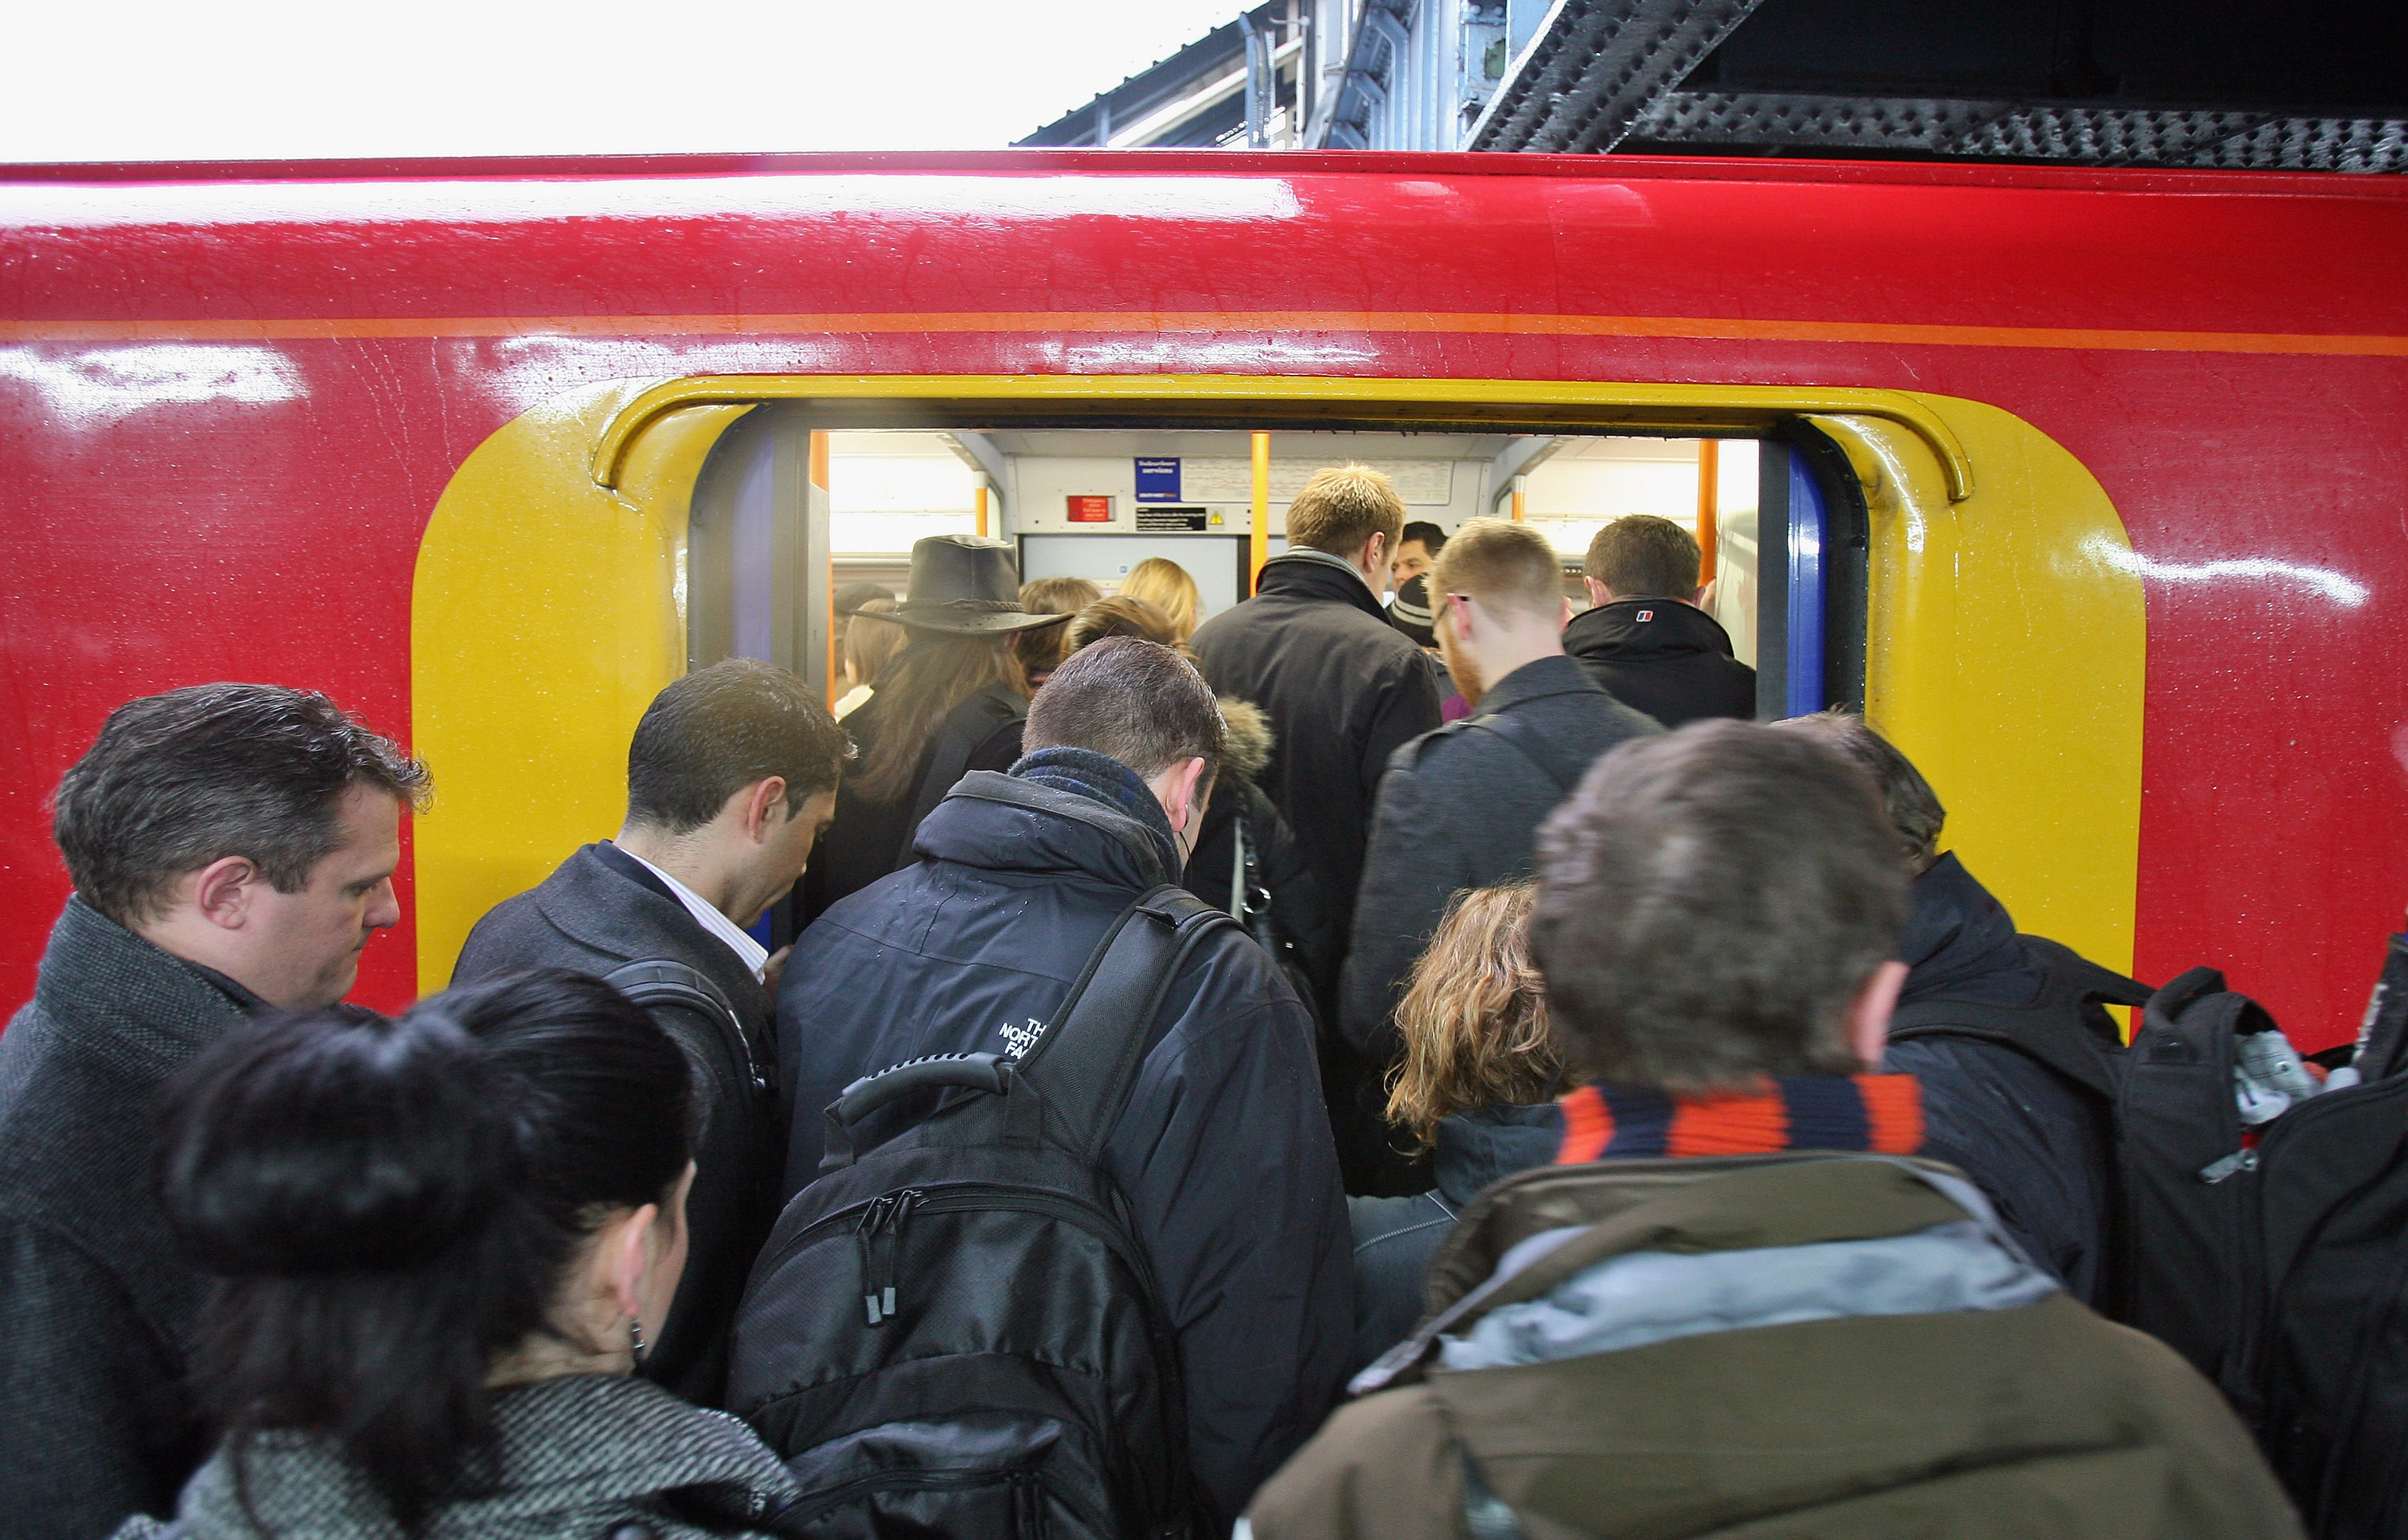 More misery for morning rail commuters as trains delayed in London and south-east